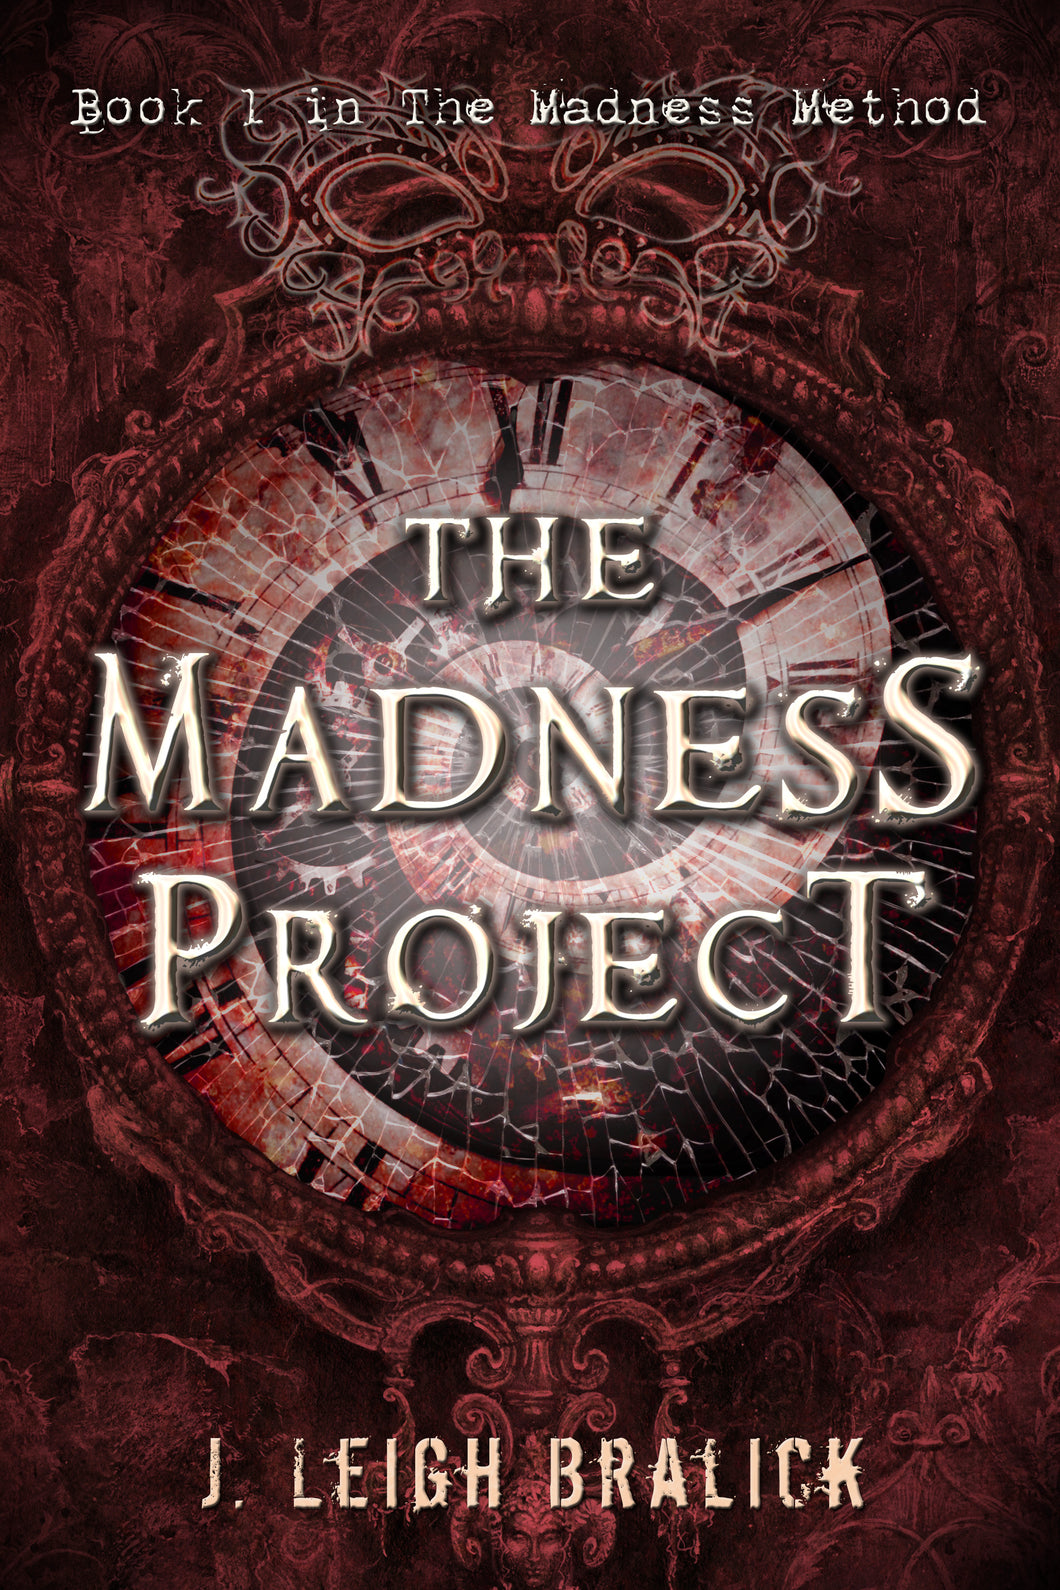 The Madness Project (The Madness Method #1)